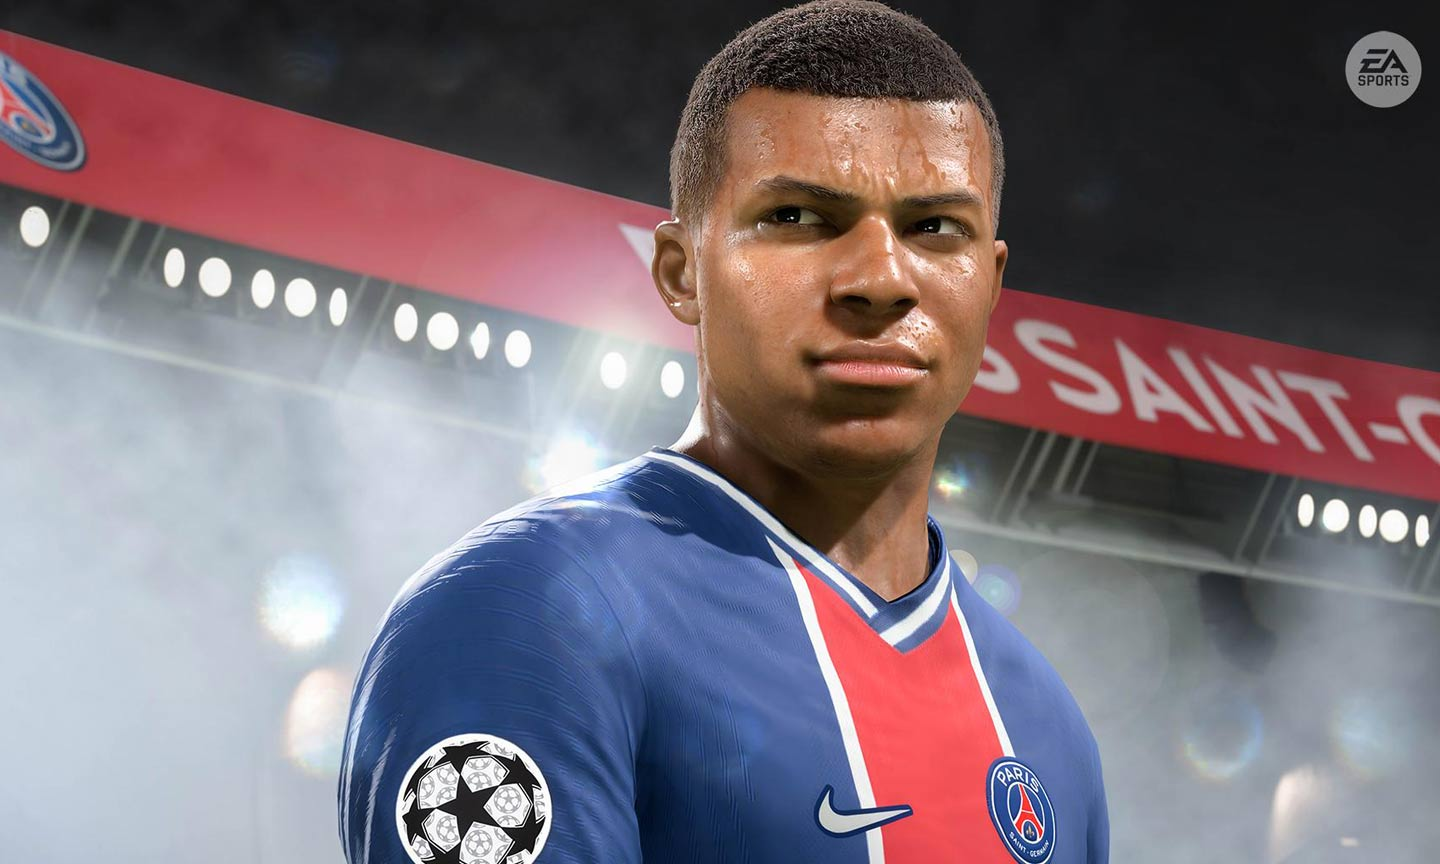 FIFA 21: The Next Generation Edition for PS5 and Xbox Series X/S will be available starting December 4, 2020.  (c) EA Sports